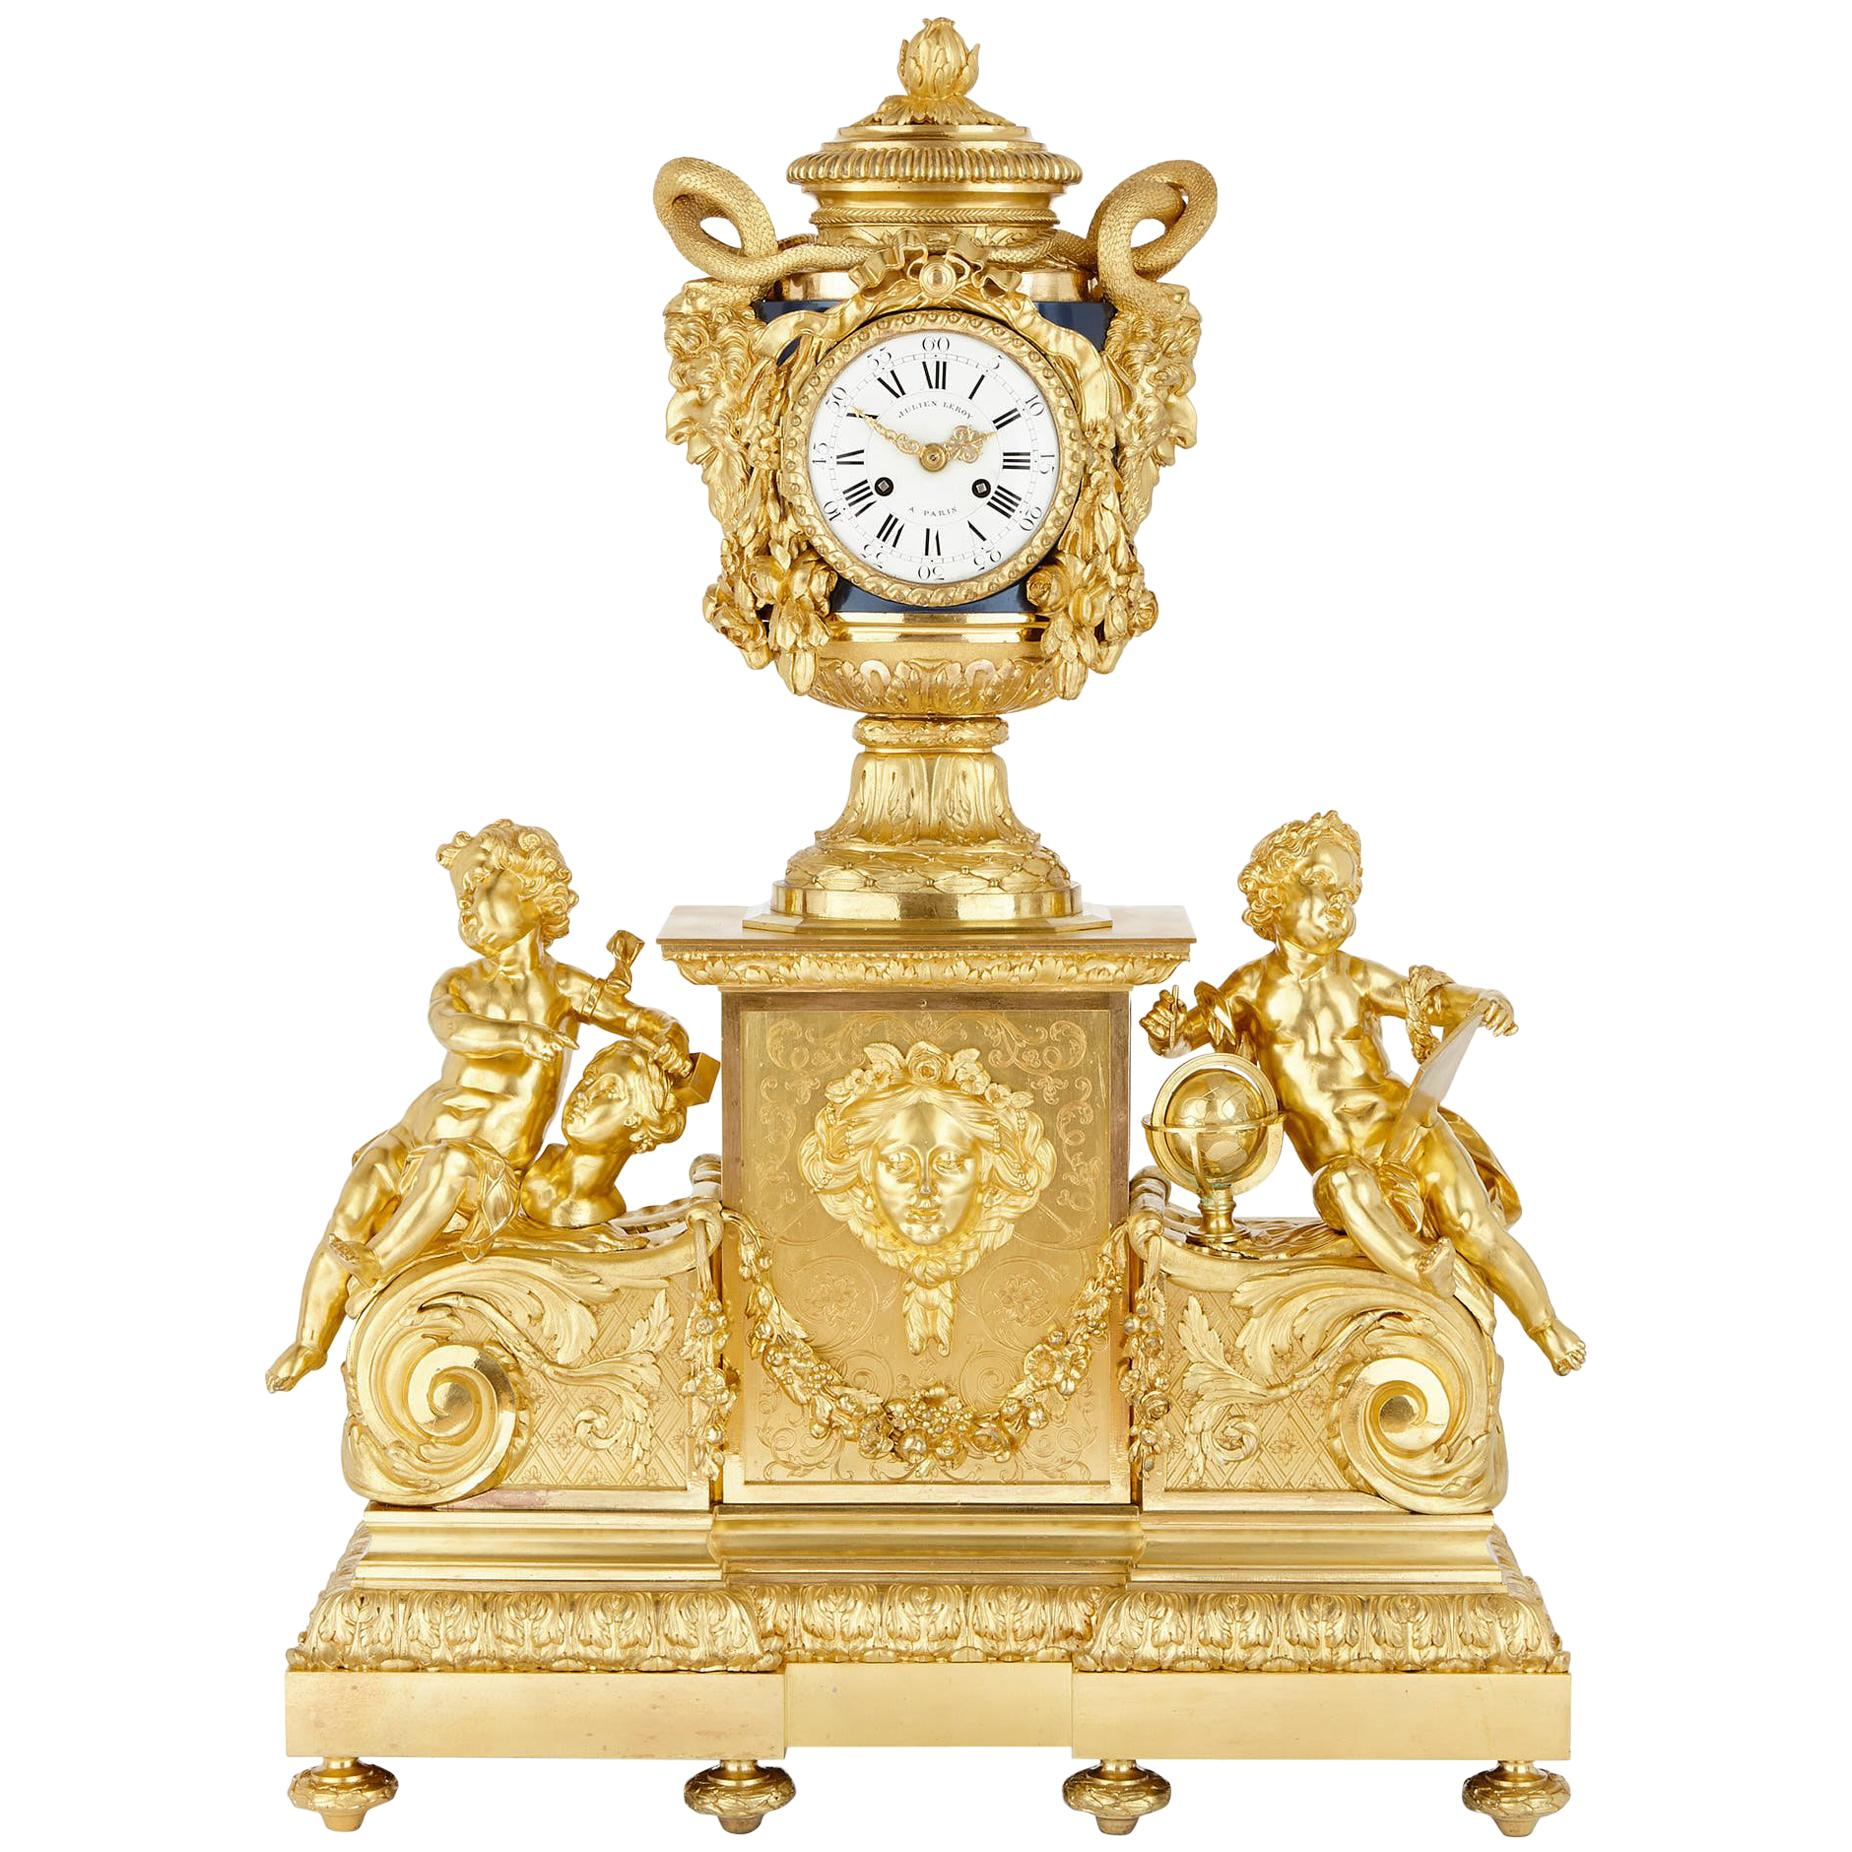 Monumental Napoleon III Period Gilt Bronze Clock after Le Roy